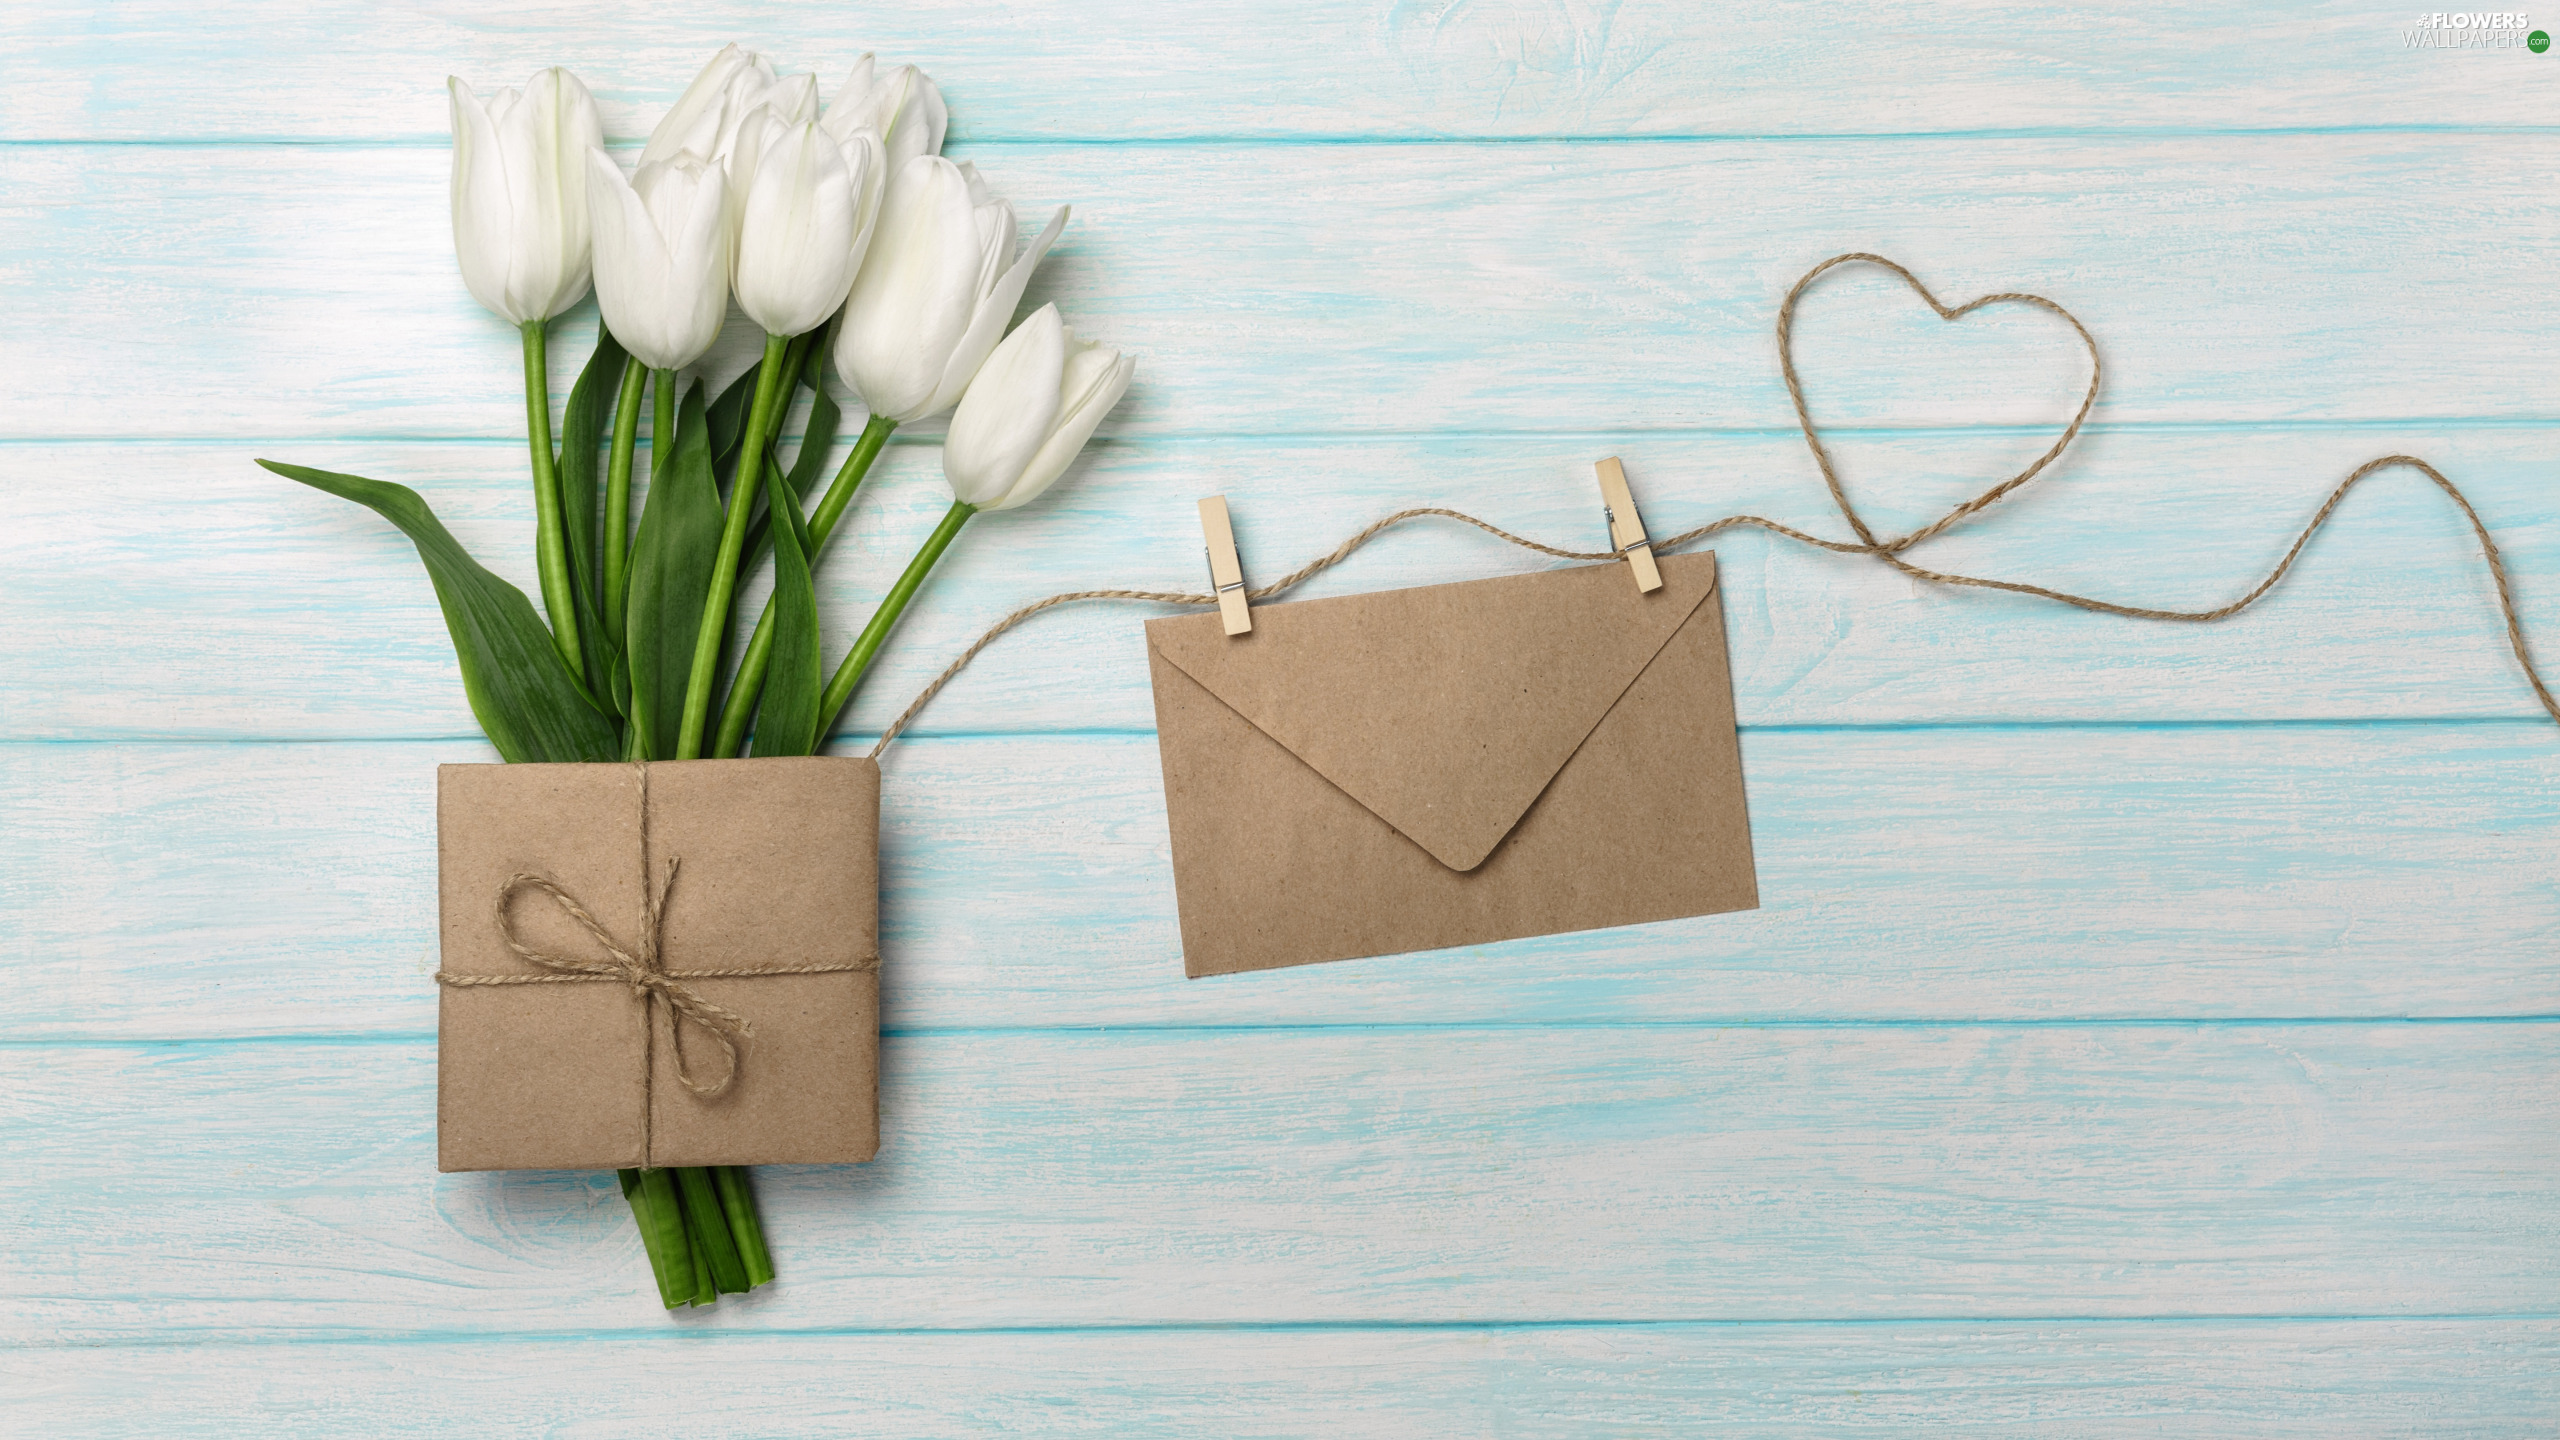 envelope, Tulips, Heart, Present, White, twine, Buckles